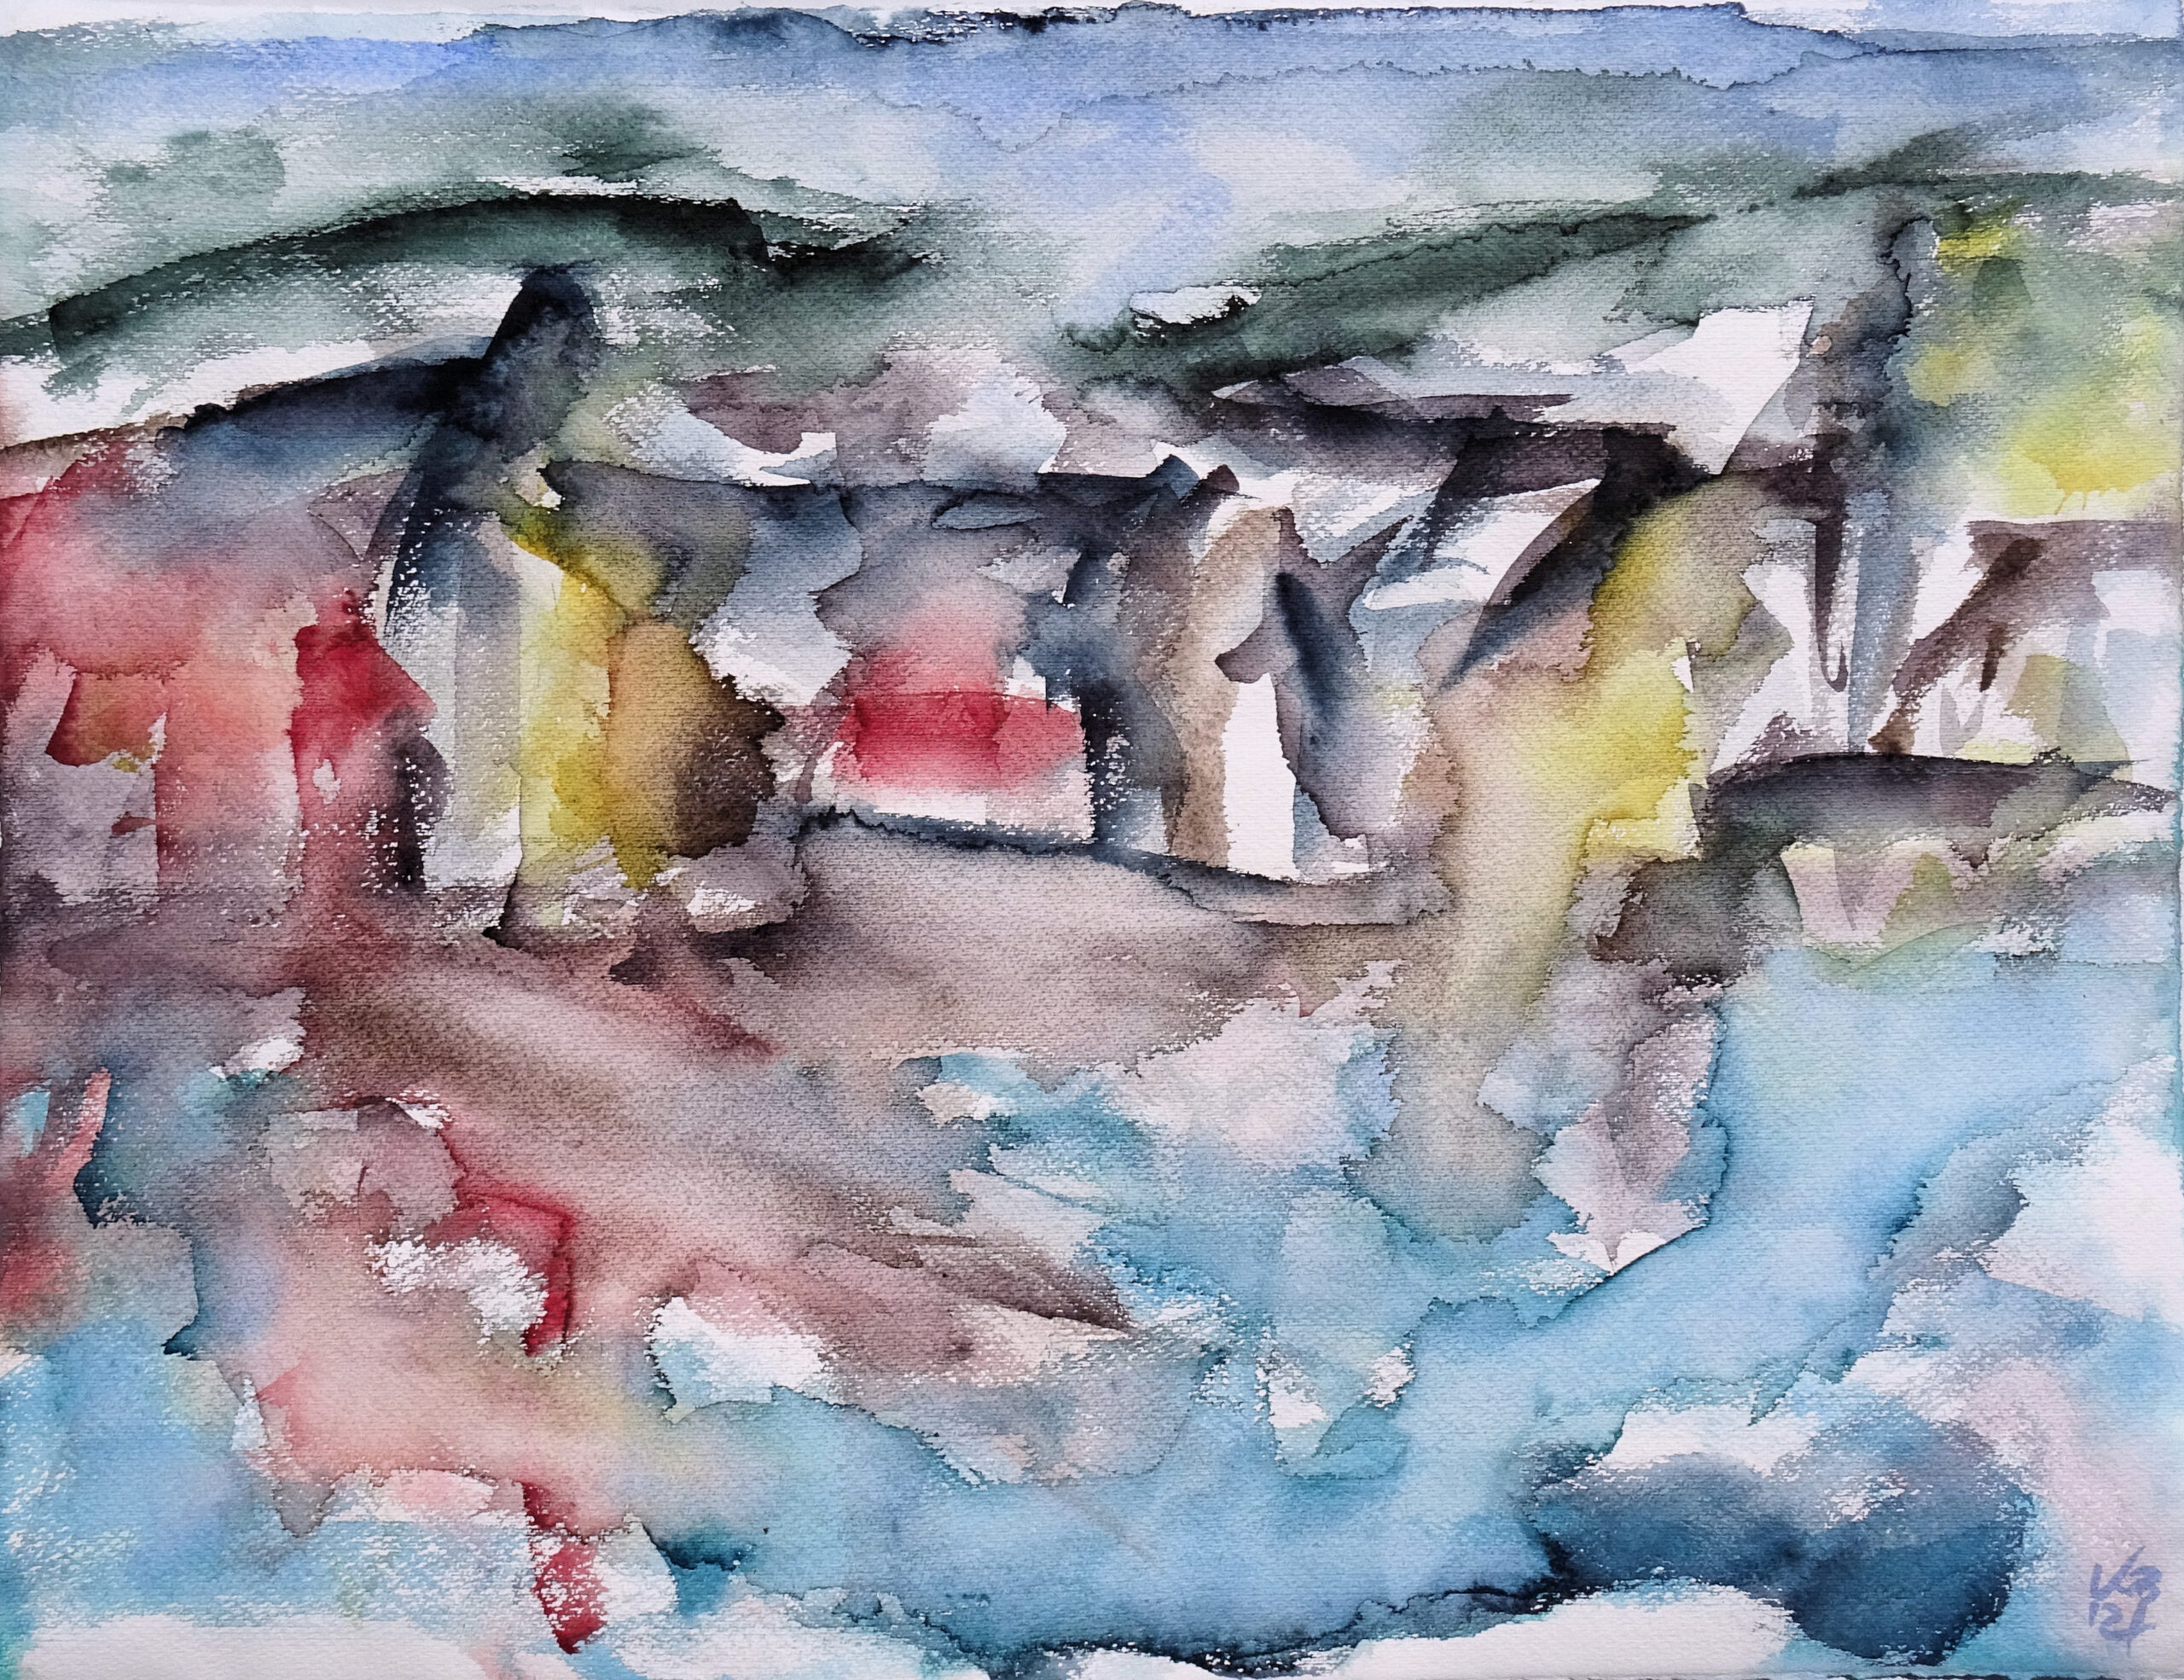 Hamnavoe I, Watercolour 65 x 50 cm, © 2021 by Klaus Bölling